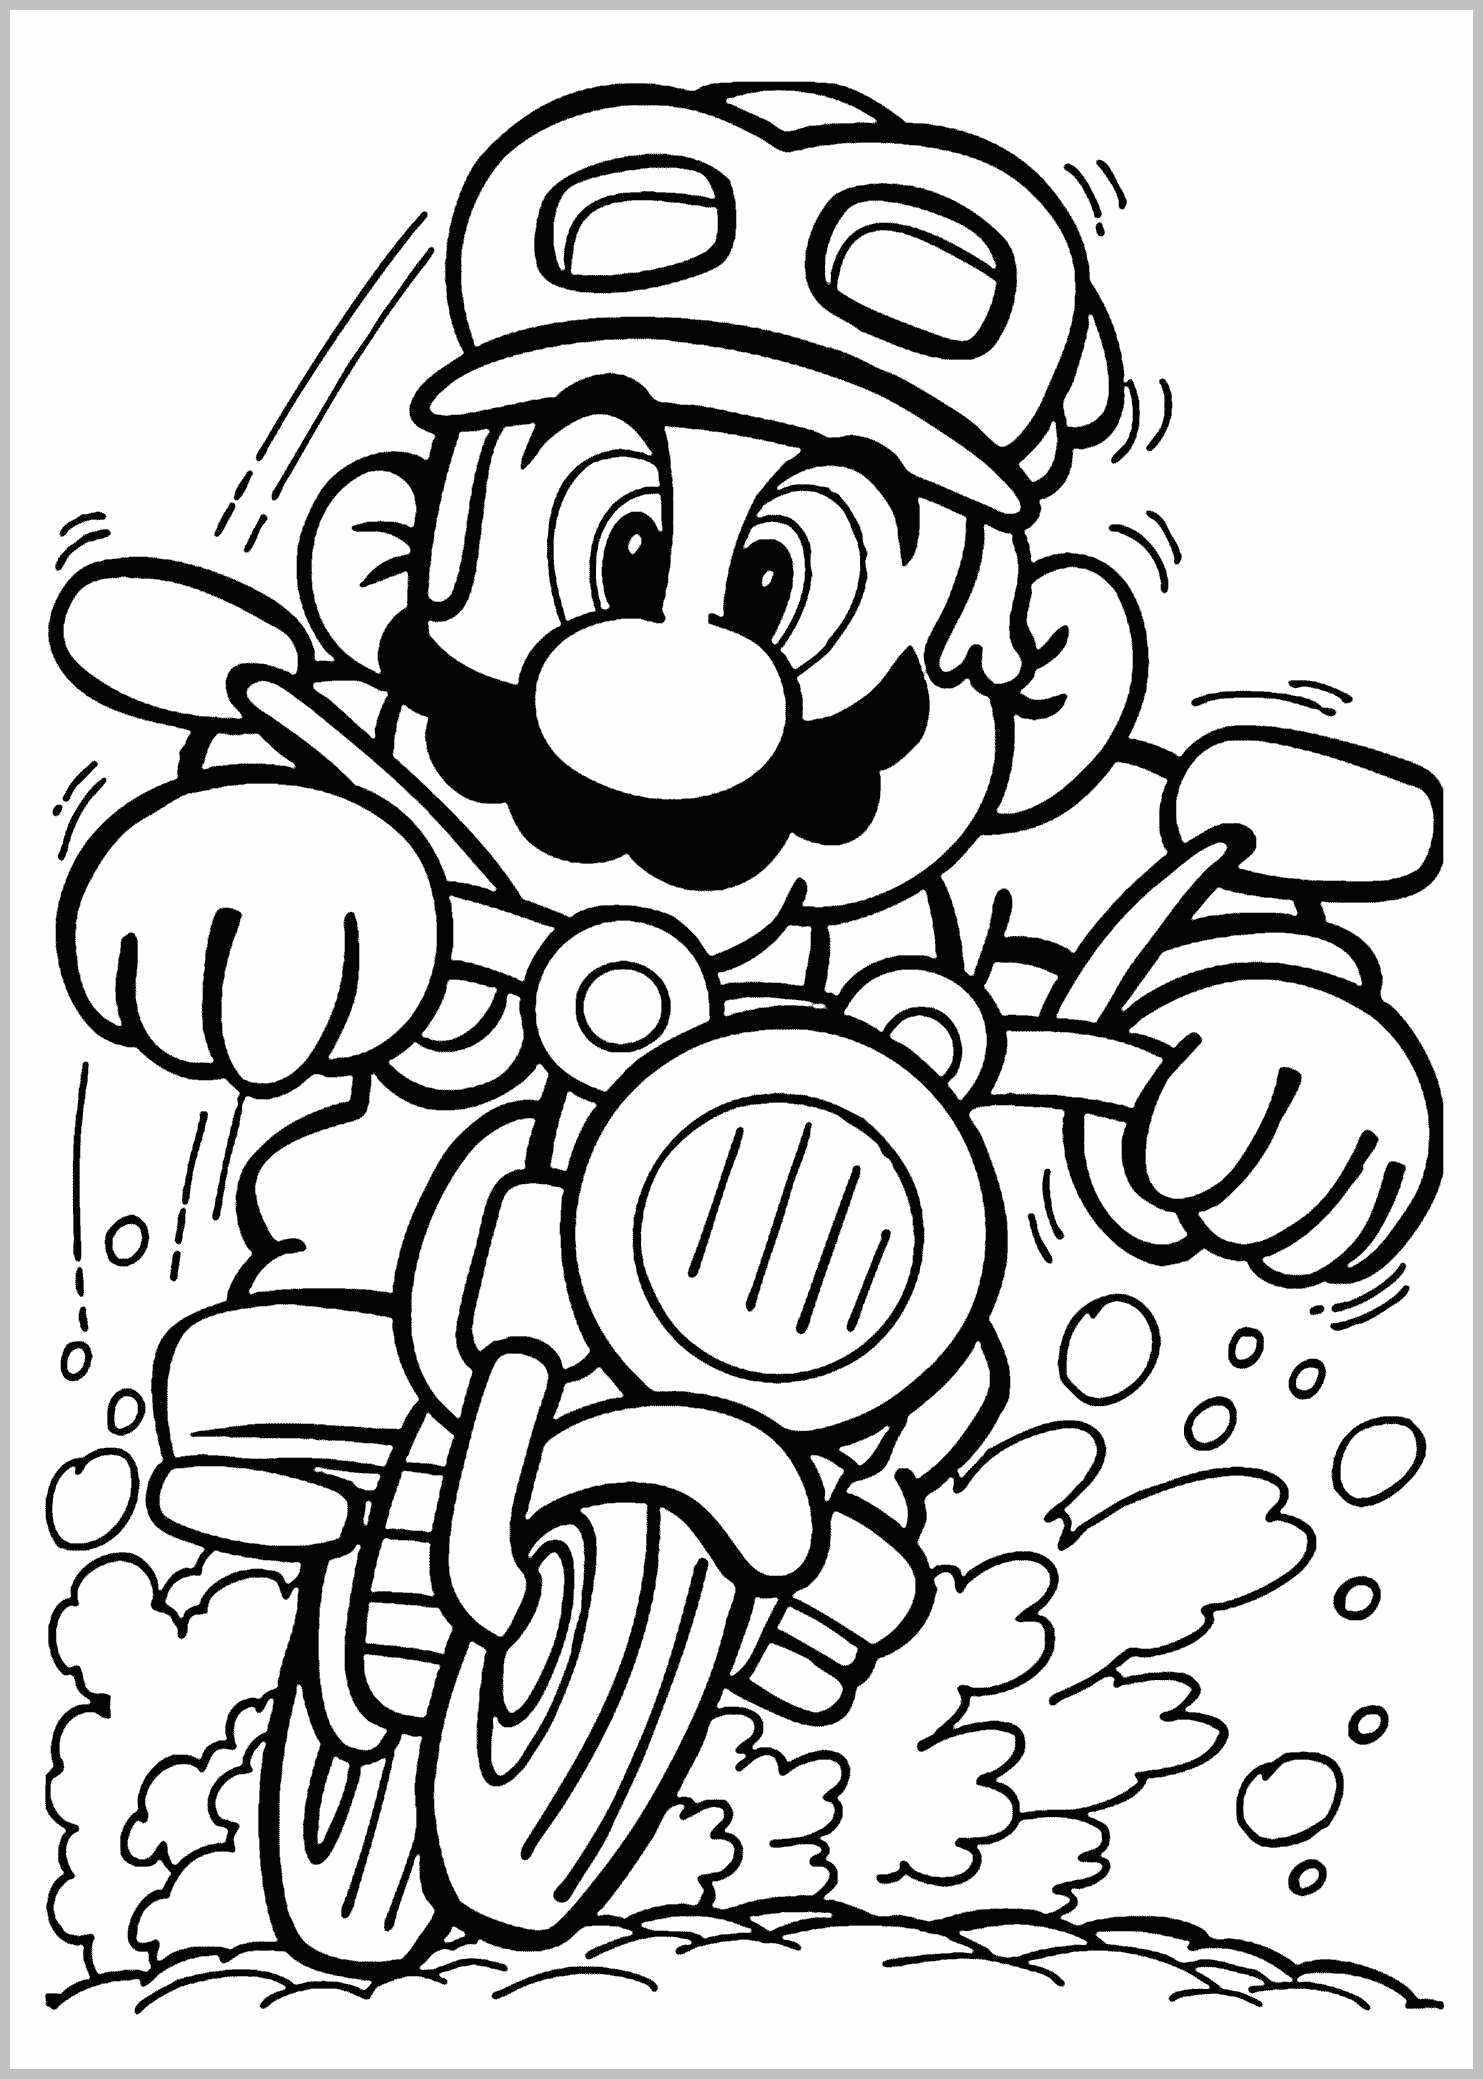 Coloring toy Story 19 Lovely toy Story 19 Coloring Page 19 Awesome